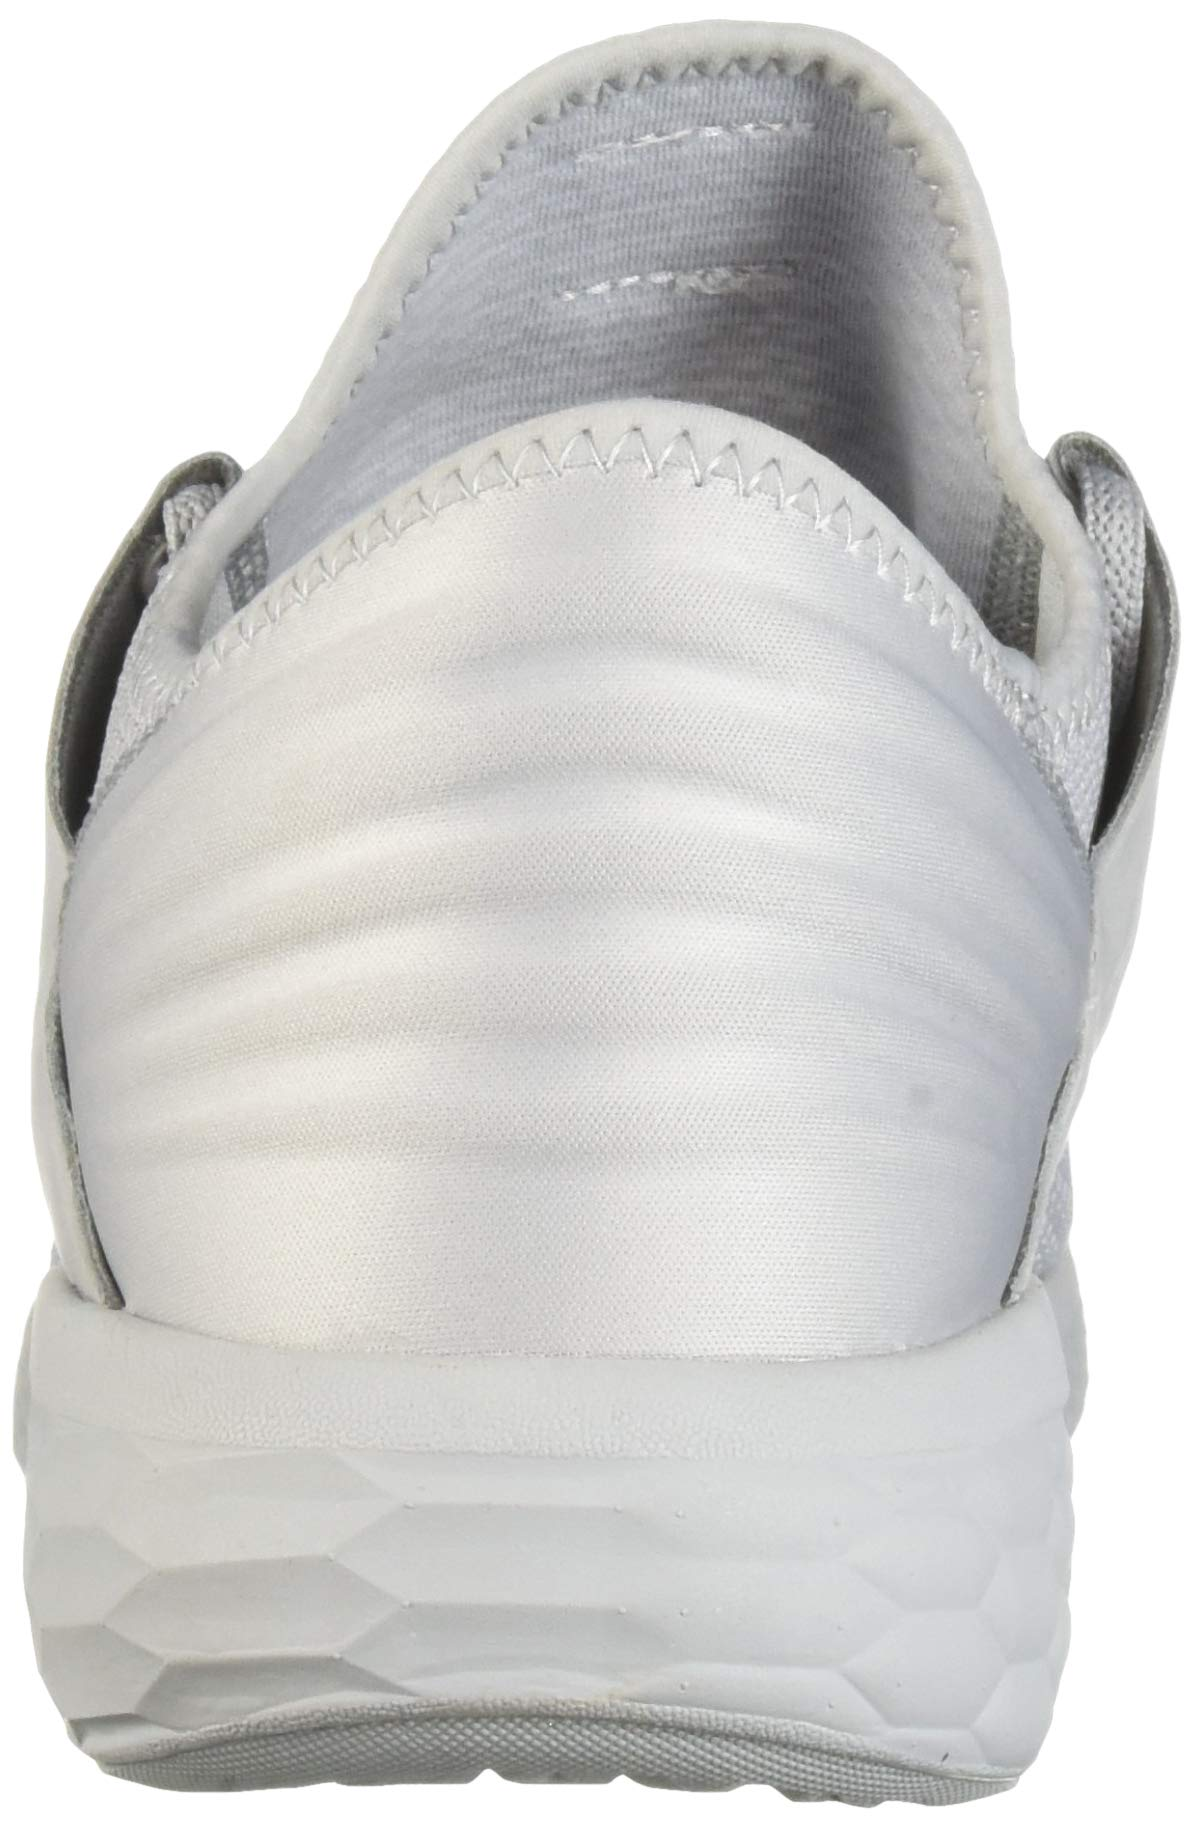 New Balance Men's Cruz V2 Fresh Foam Running Shoe, arctic fox/white/nubuck, 7 D US by New Balance (Image #2)